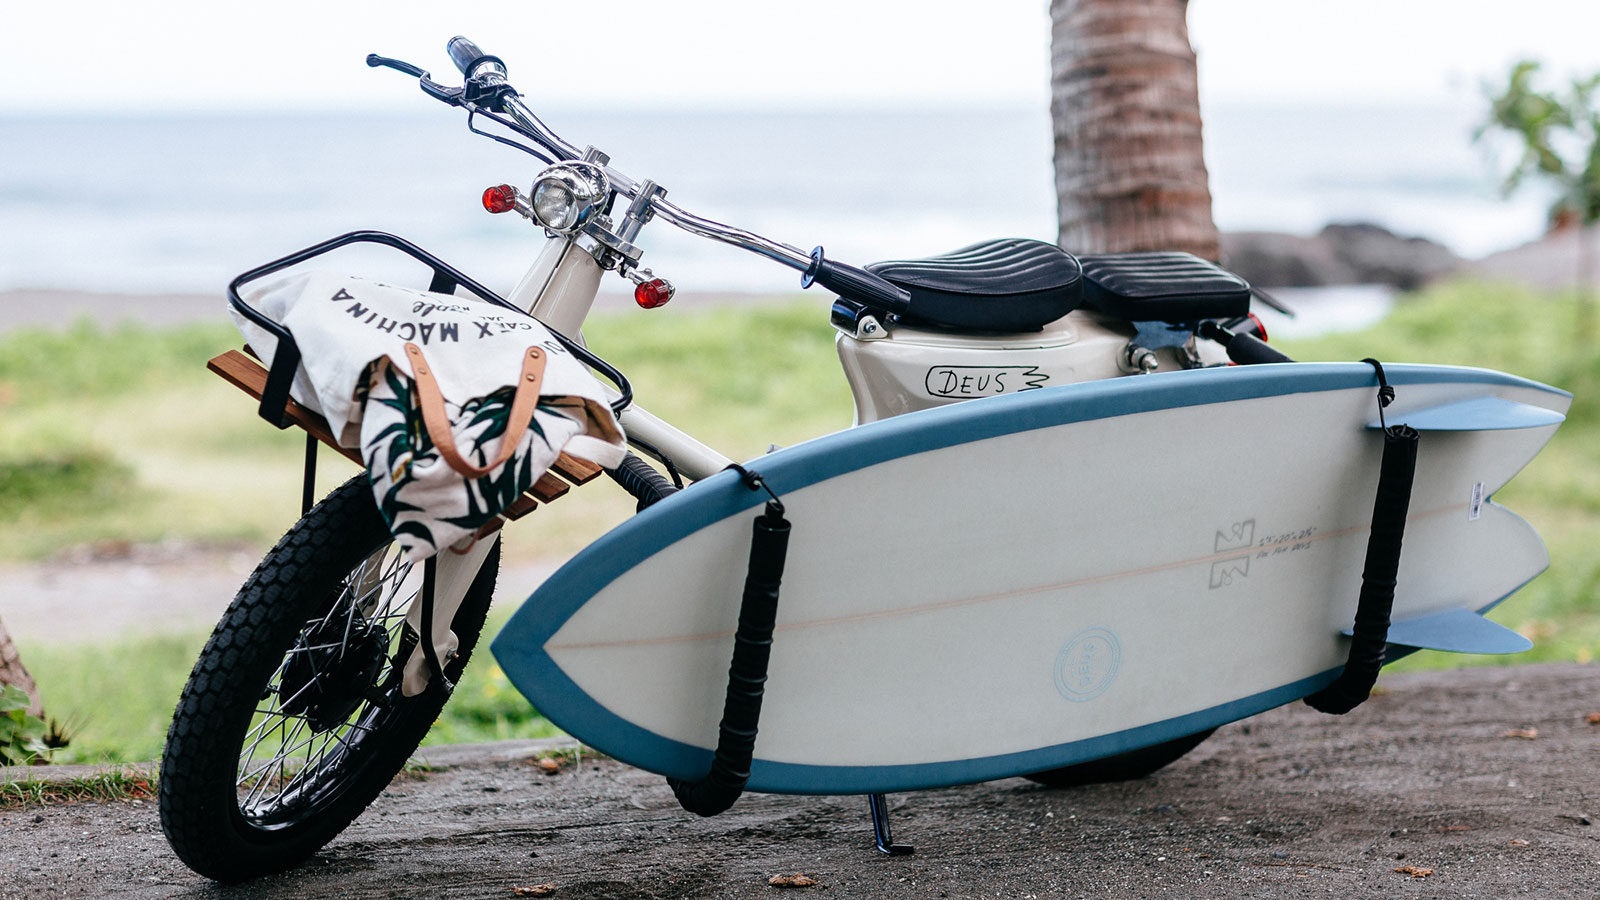 DEUS EX MACHINA SEA SIDER MOTORCYCLE